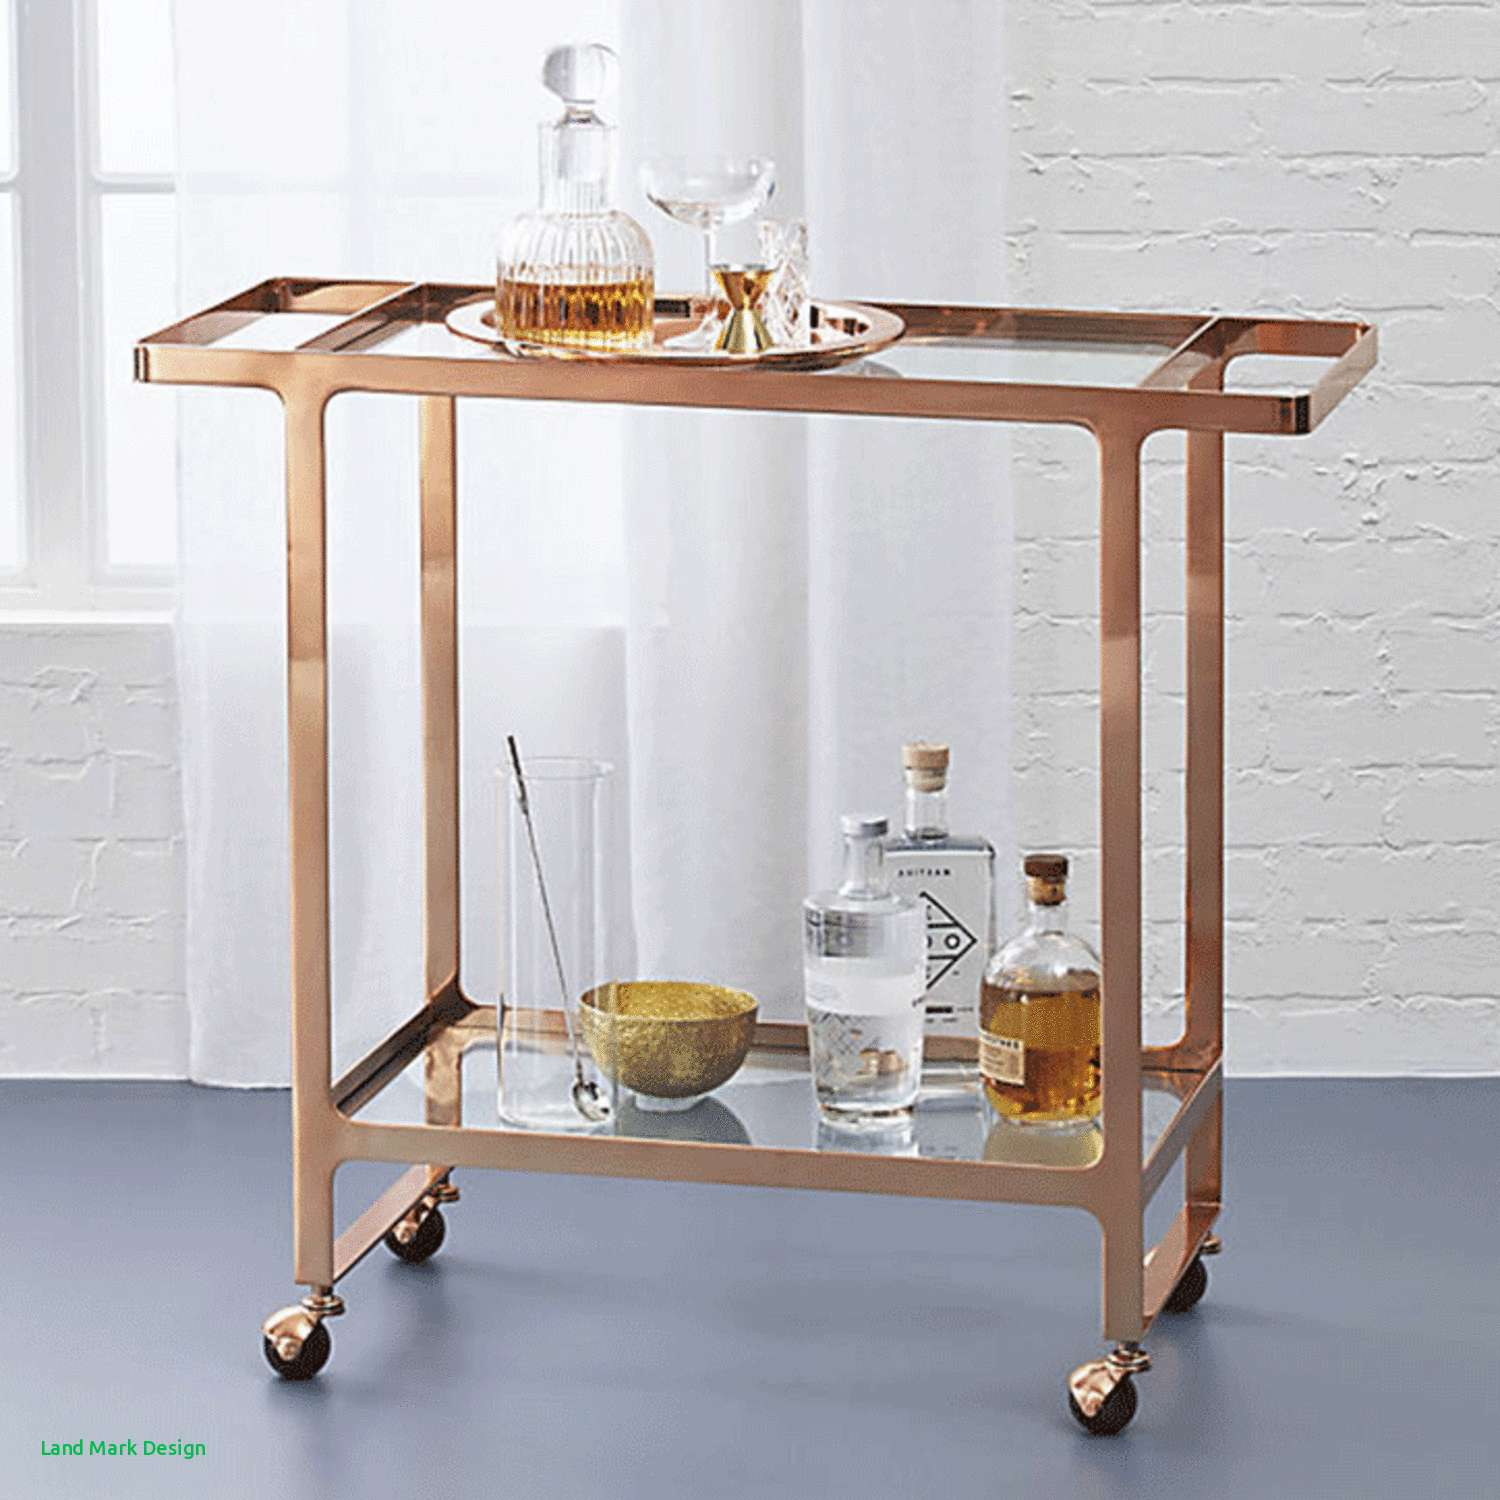 cb2 white vase of cb2 tables design home design for go for rose gold a modern take on heavy metal home goods